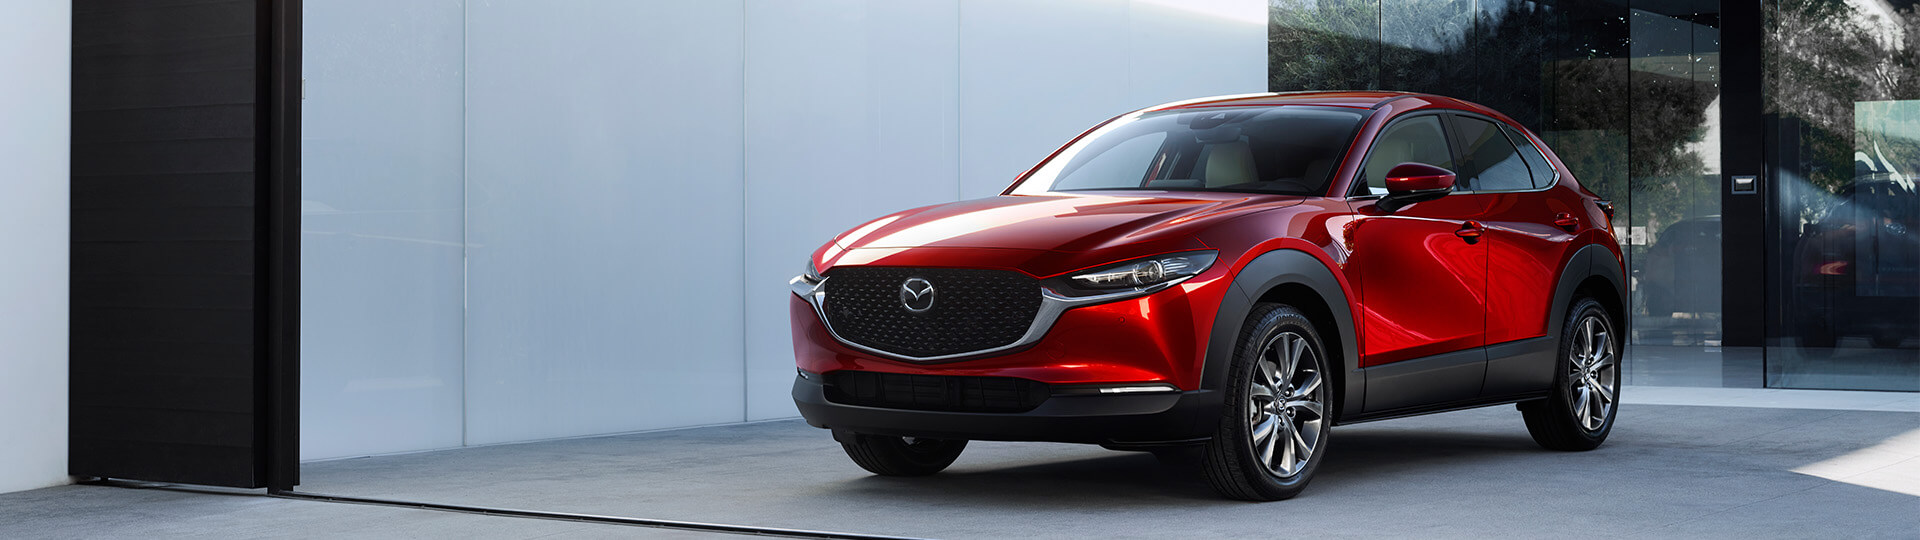 The newest addition to Mazda series of crossover vehicle, the Mazda CX-30